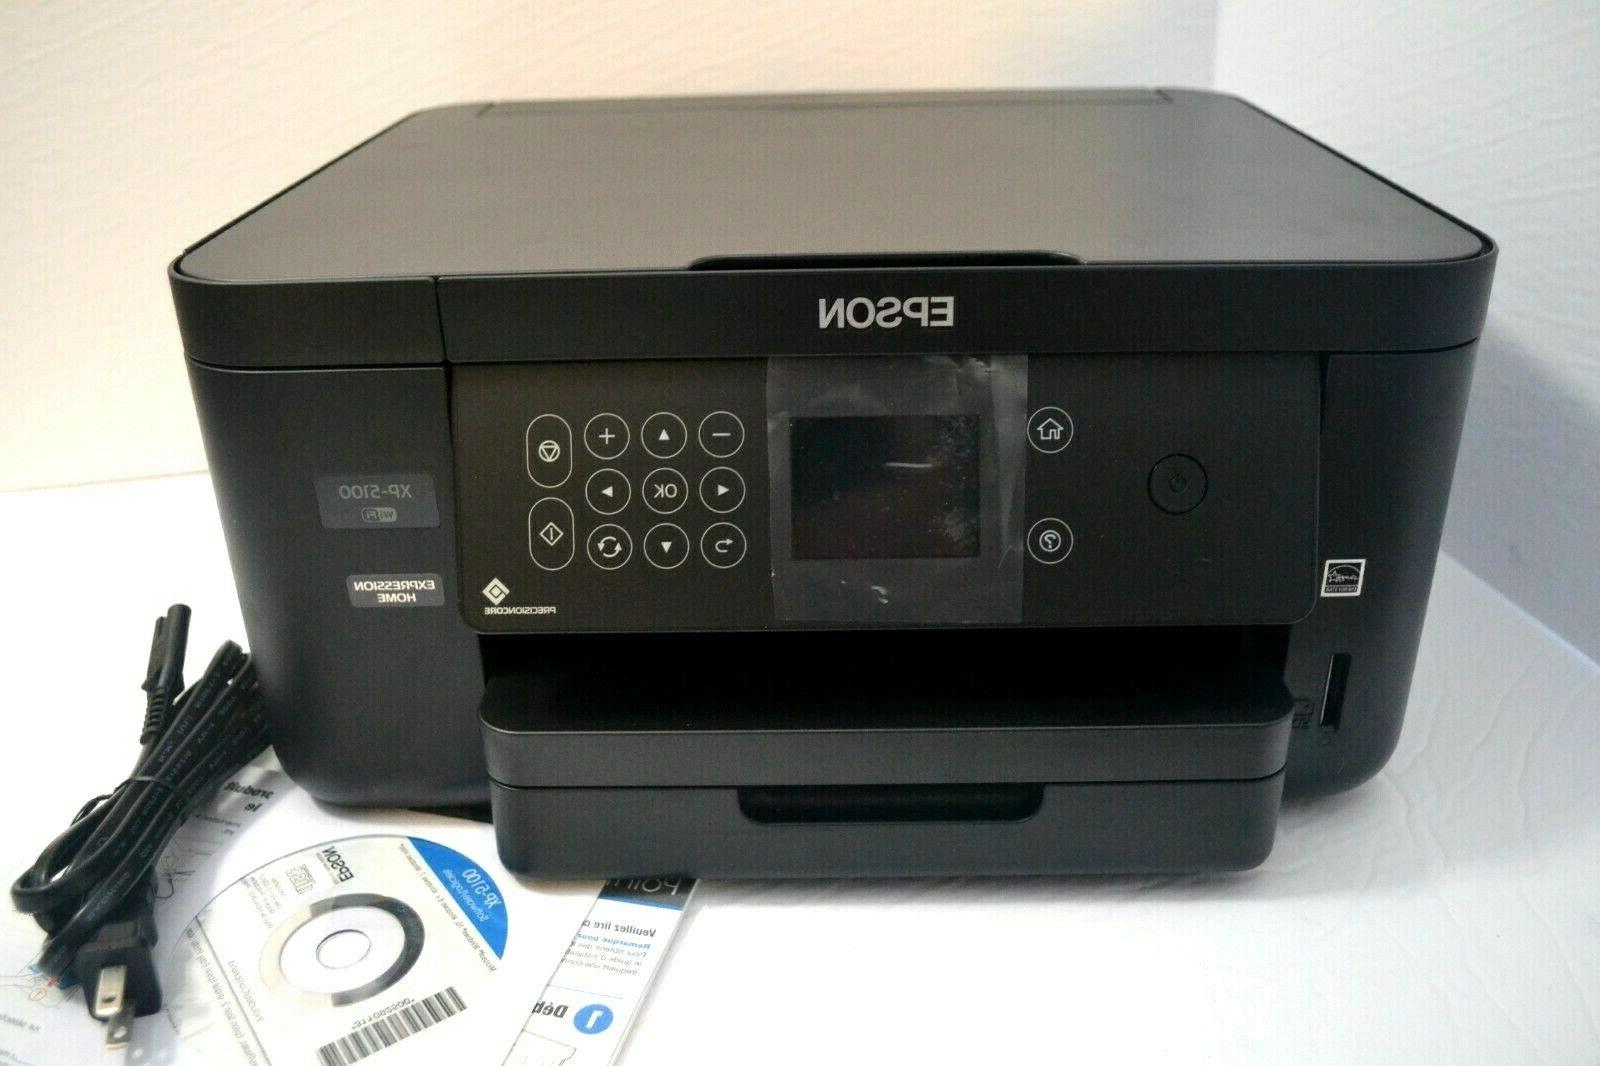 xp 5100 expression home wireless color photo